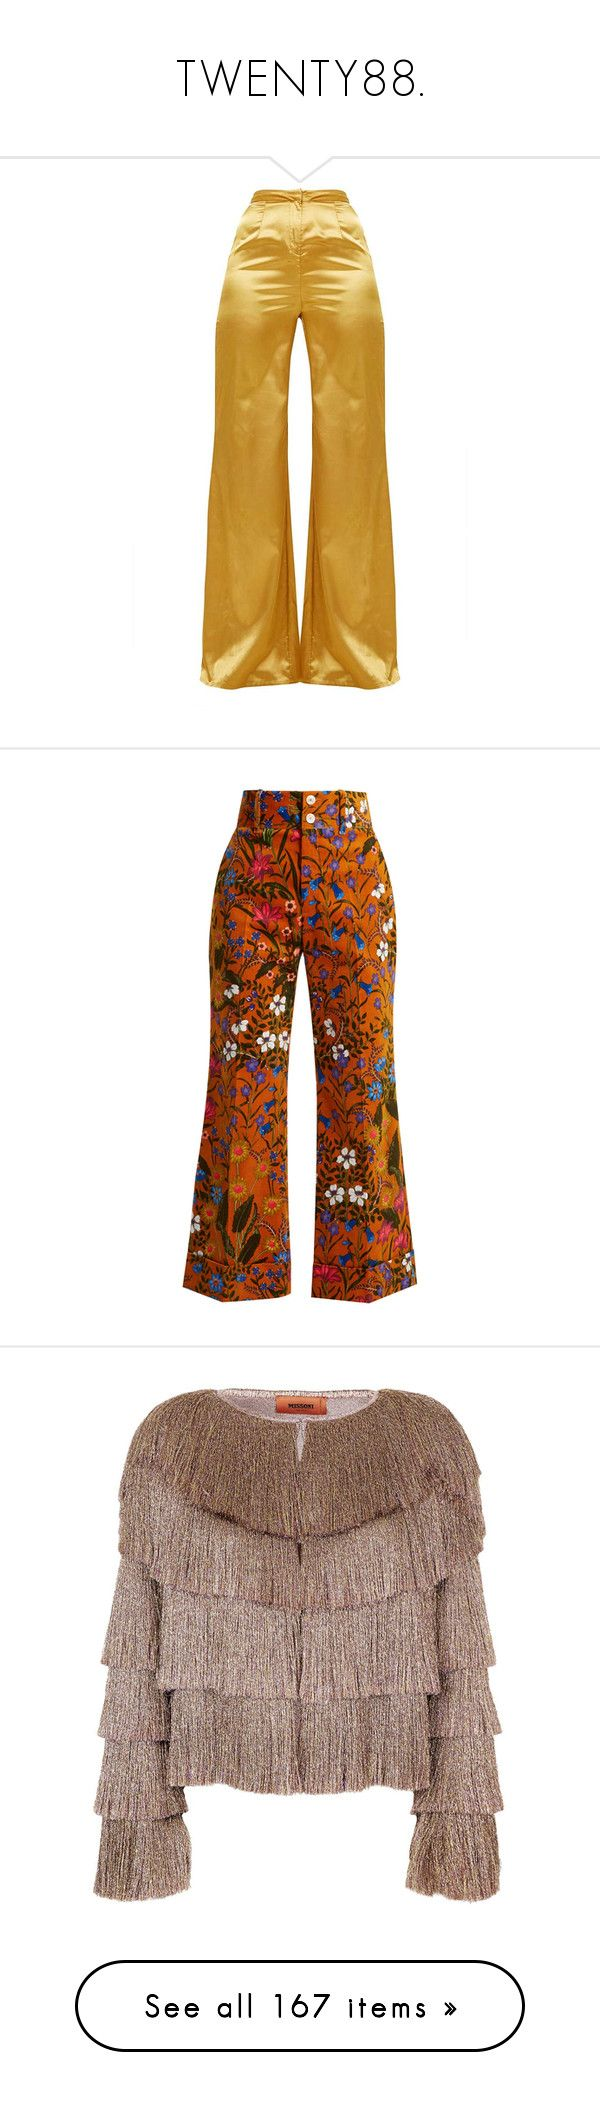 """""""TWENTY88."""" by mxlewi ❤ liked on Polyvore featuring pants, bottoms, wide leg pants, brown wide leg trousers, satin wide leg pants, brown trousers, mustard yellow pants, capris, trousers and gucci"""